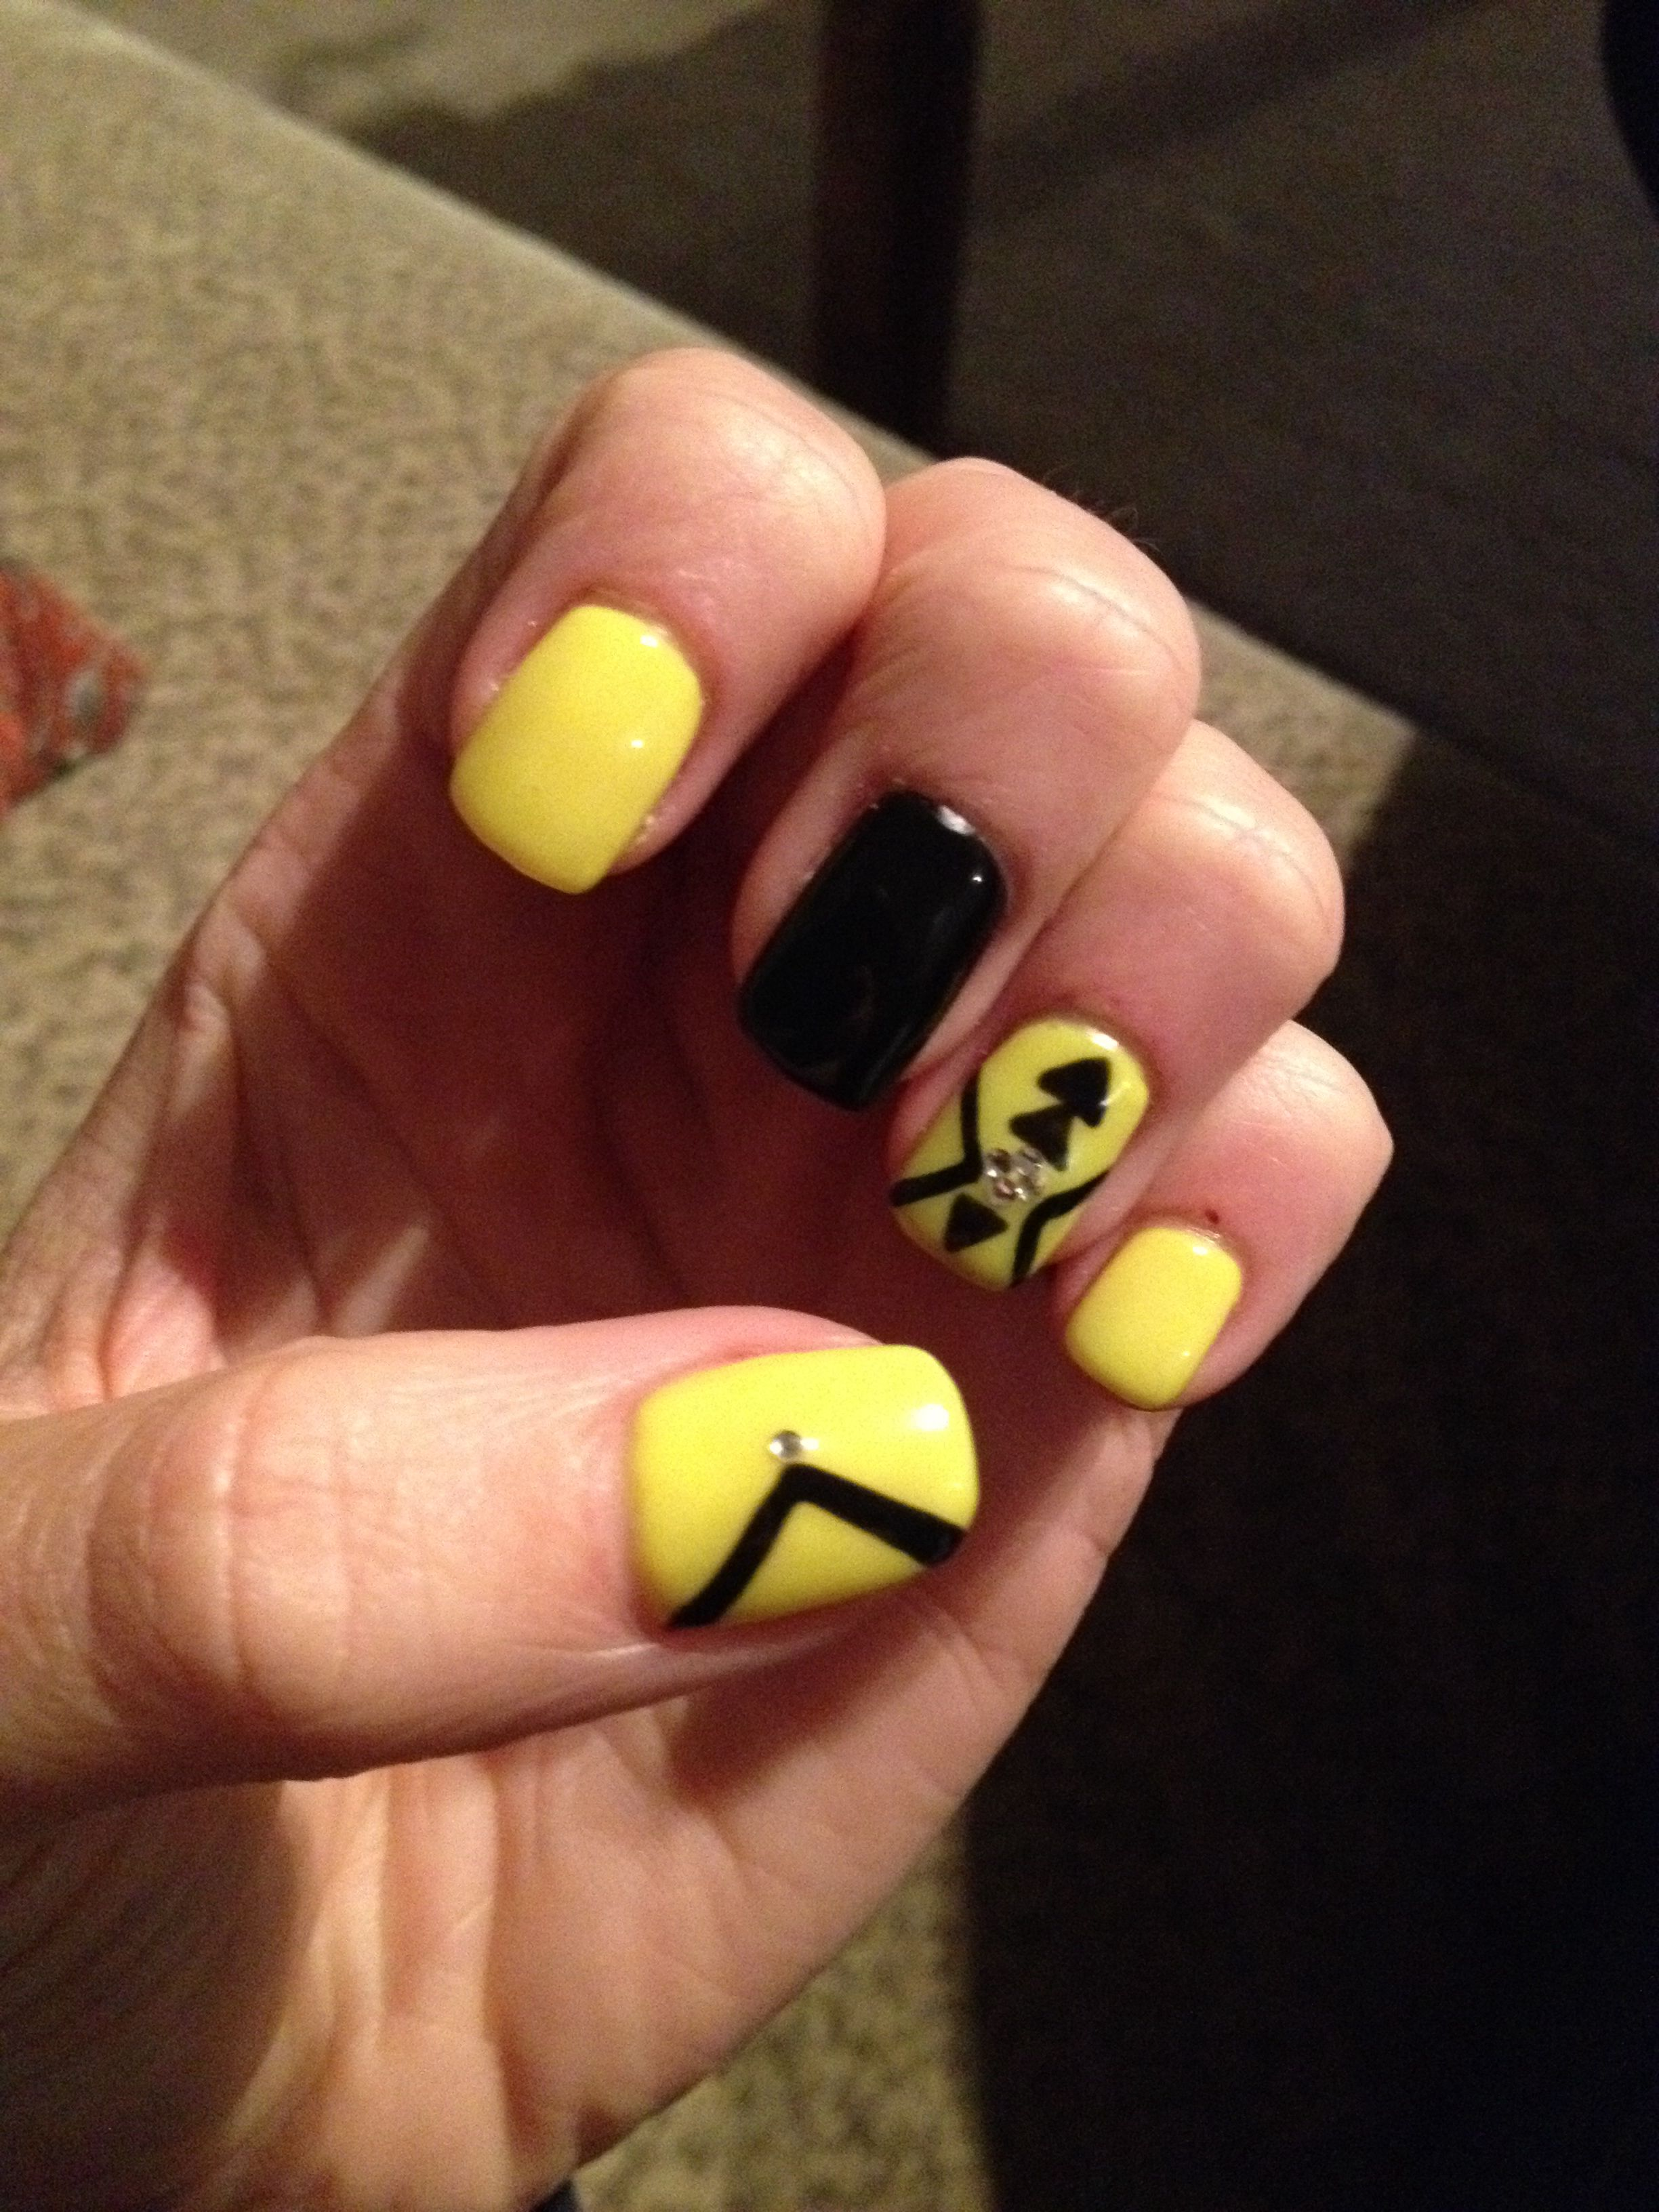 Fluro Yellow And Black Gel Nails By Tatyana Petkova Clark At Pampered To Perfection Timaru Black Gel Nails Gel Nails Nails